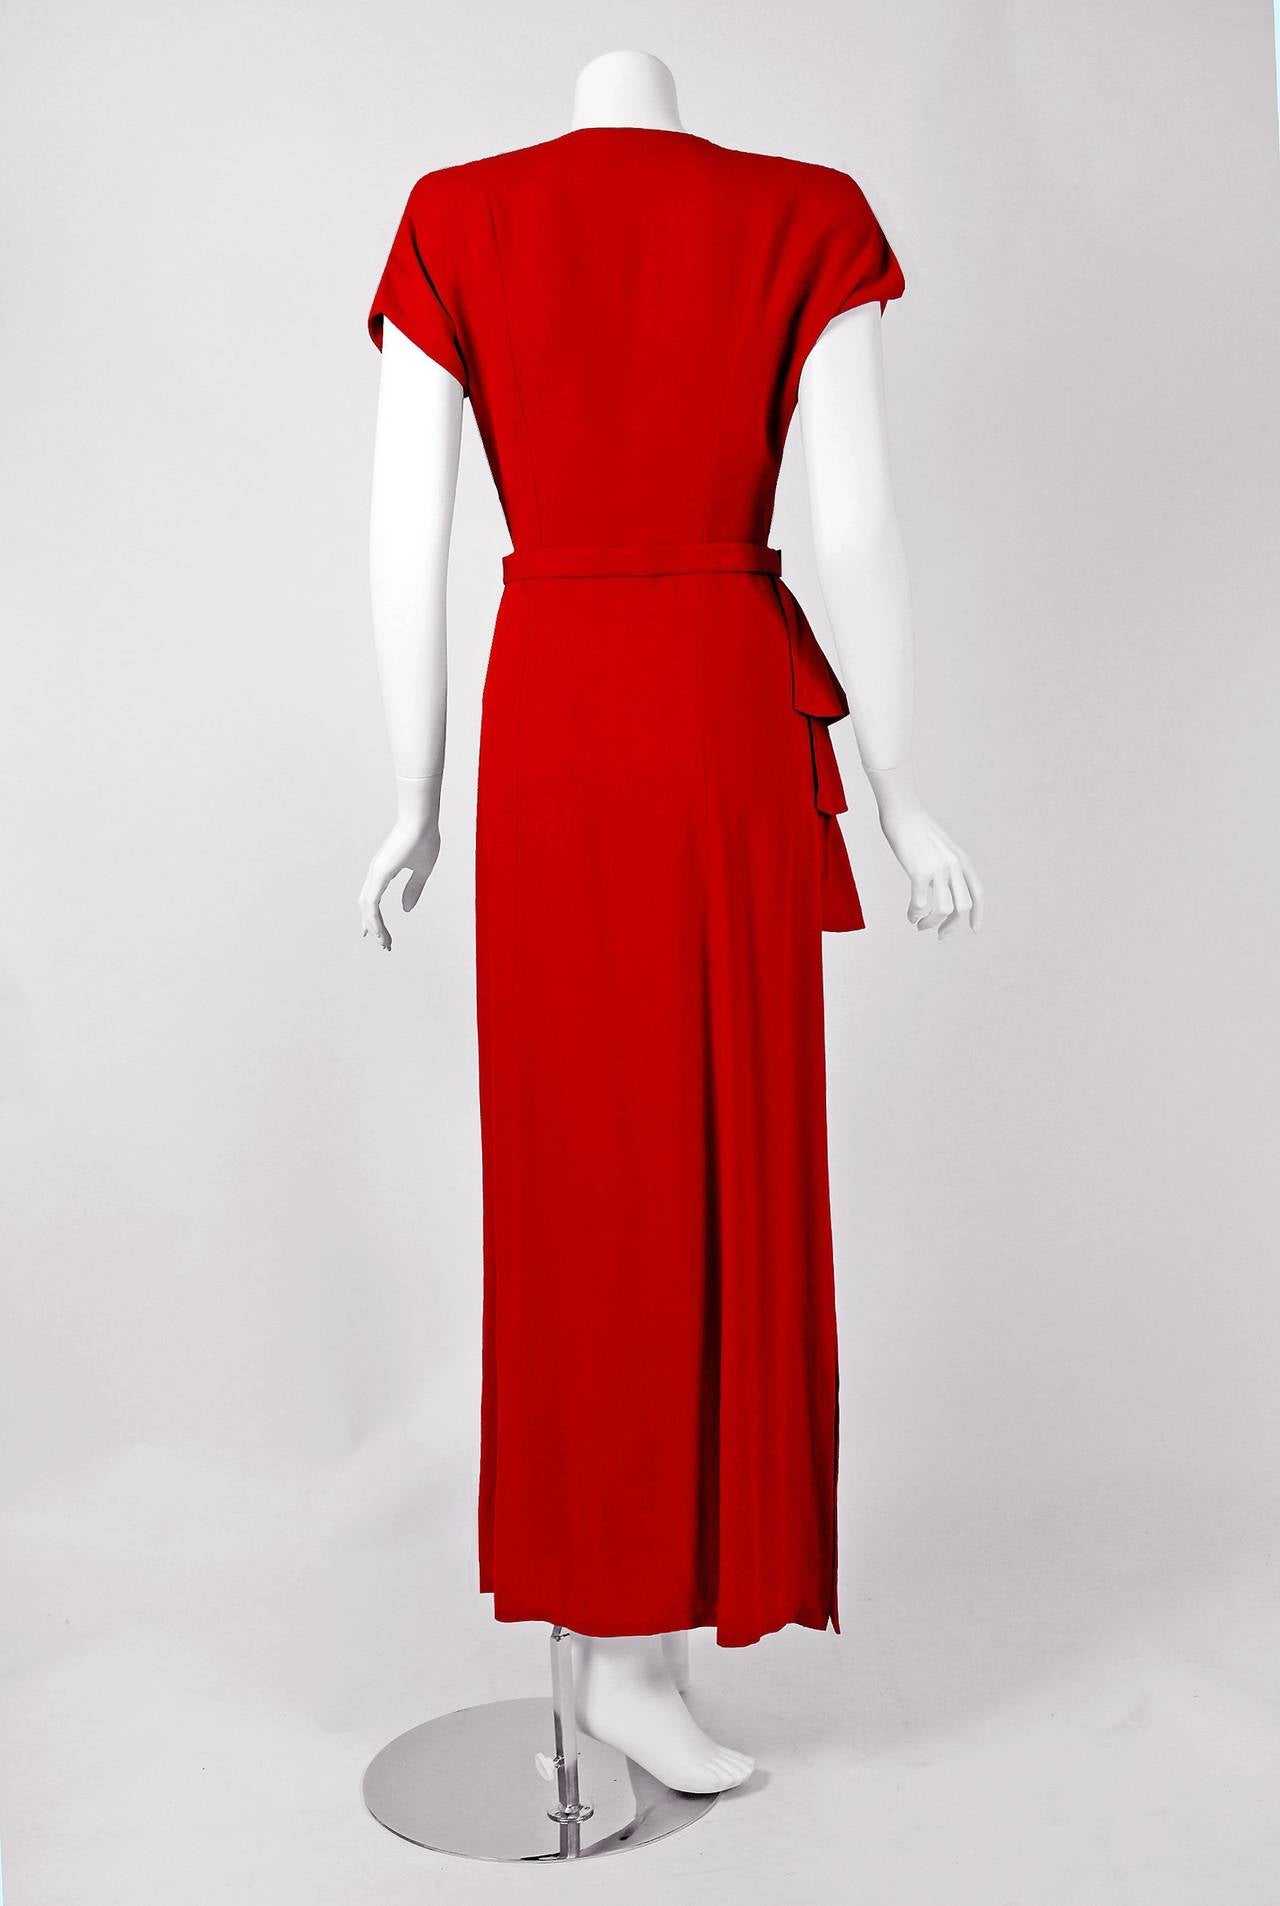 1940's Ruby-Red Beaded Crepe Belted Peplum Hourglass Evening Dress Gown 5